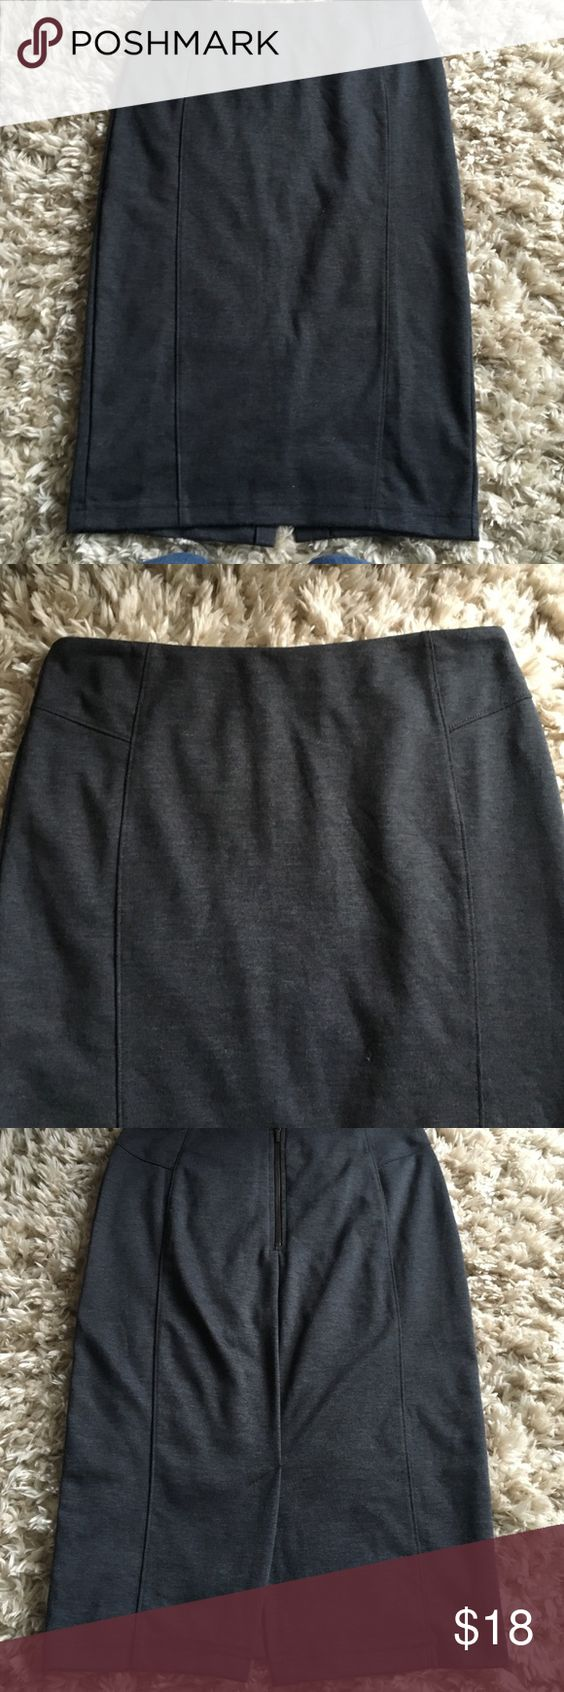 Dark gray pencil skirt. Gorgeous fit